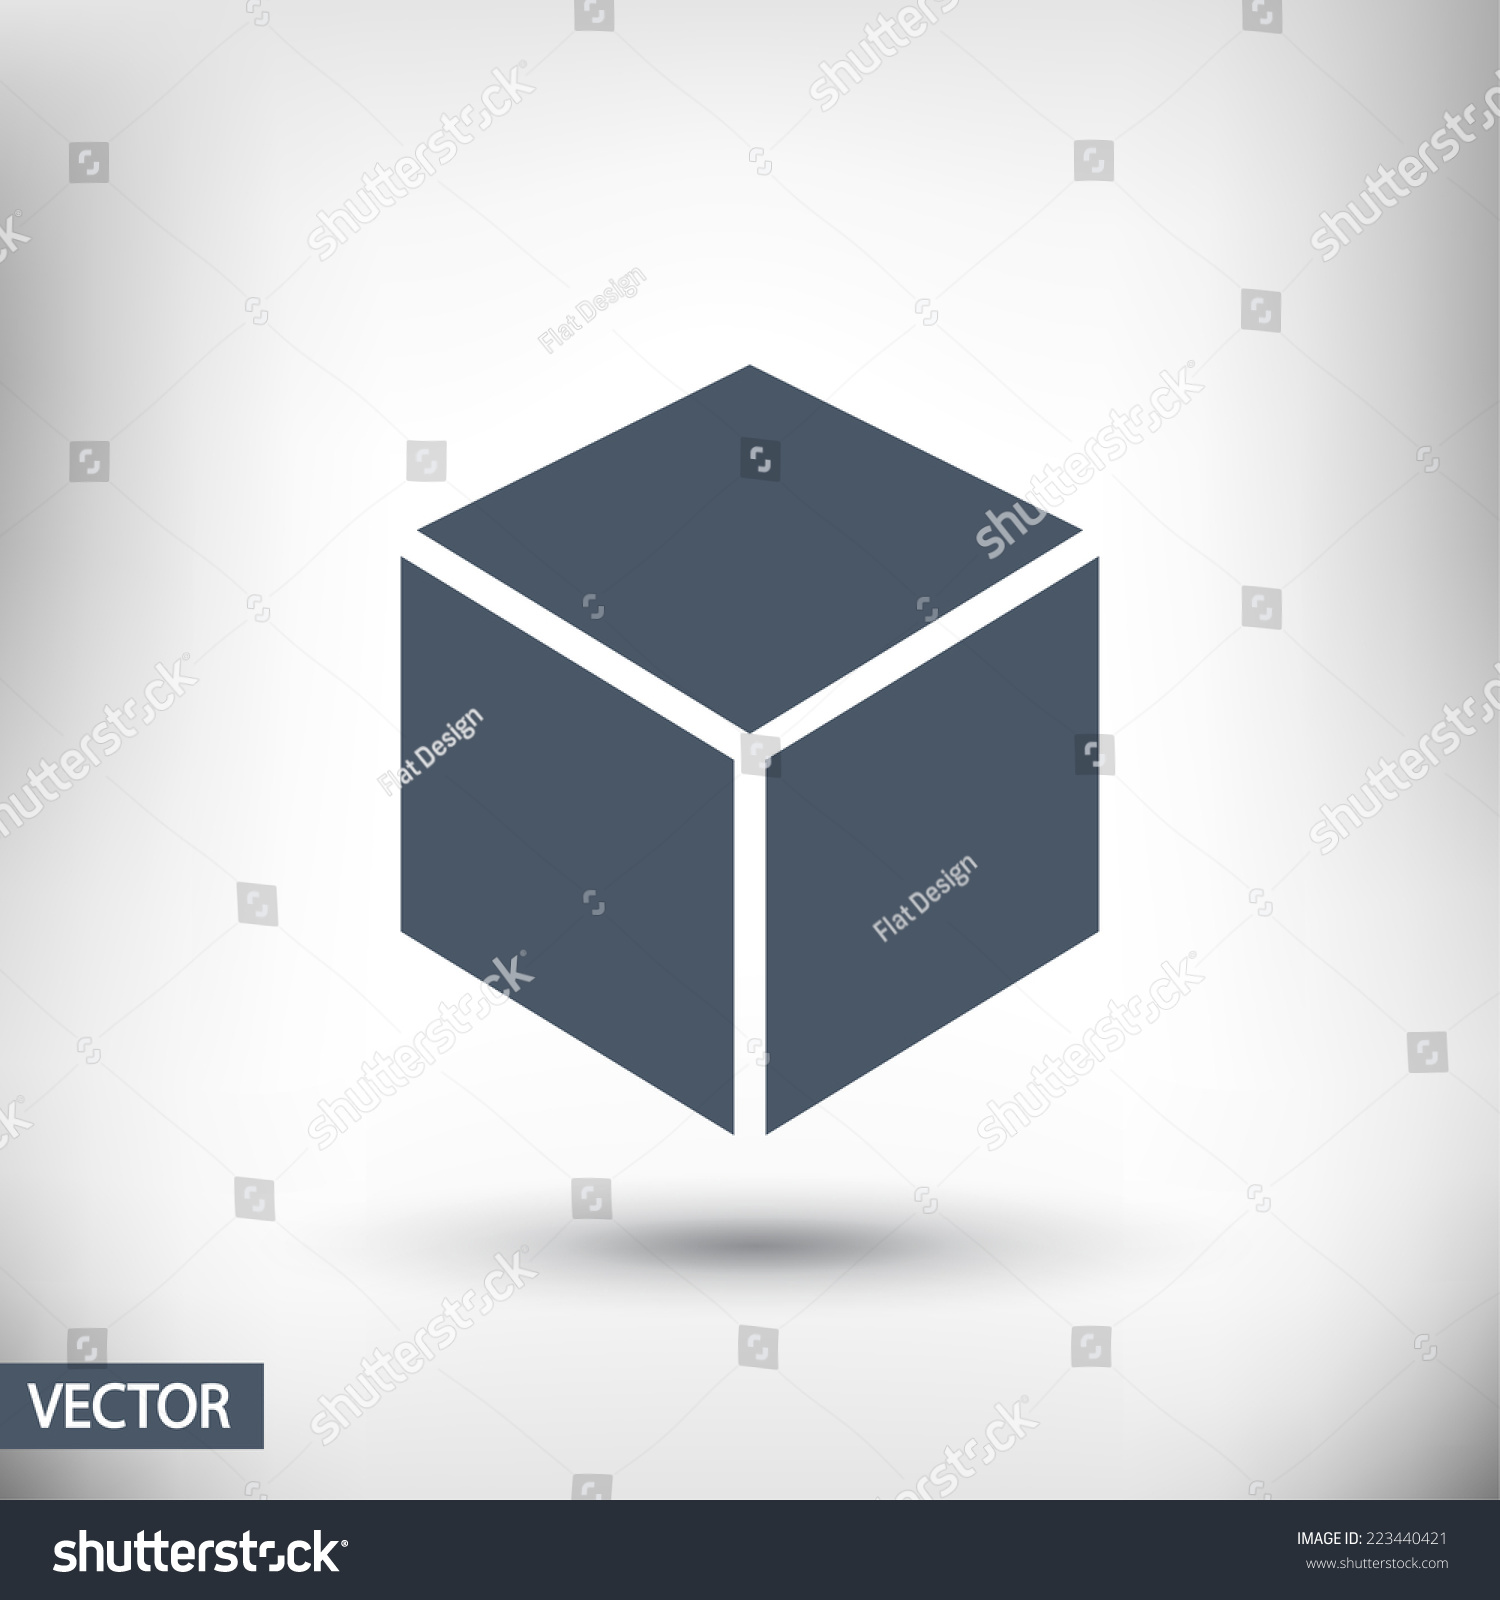 3d cube logo design icon vector illustration flat design for 3d flat design online